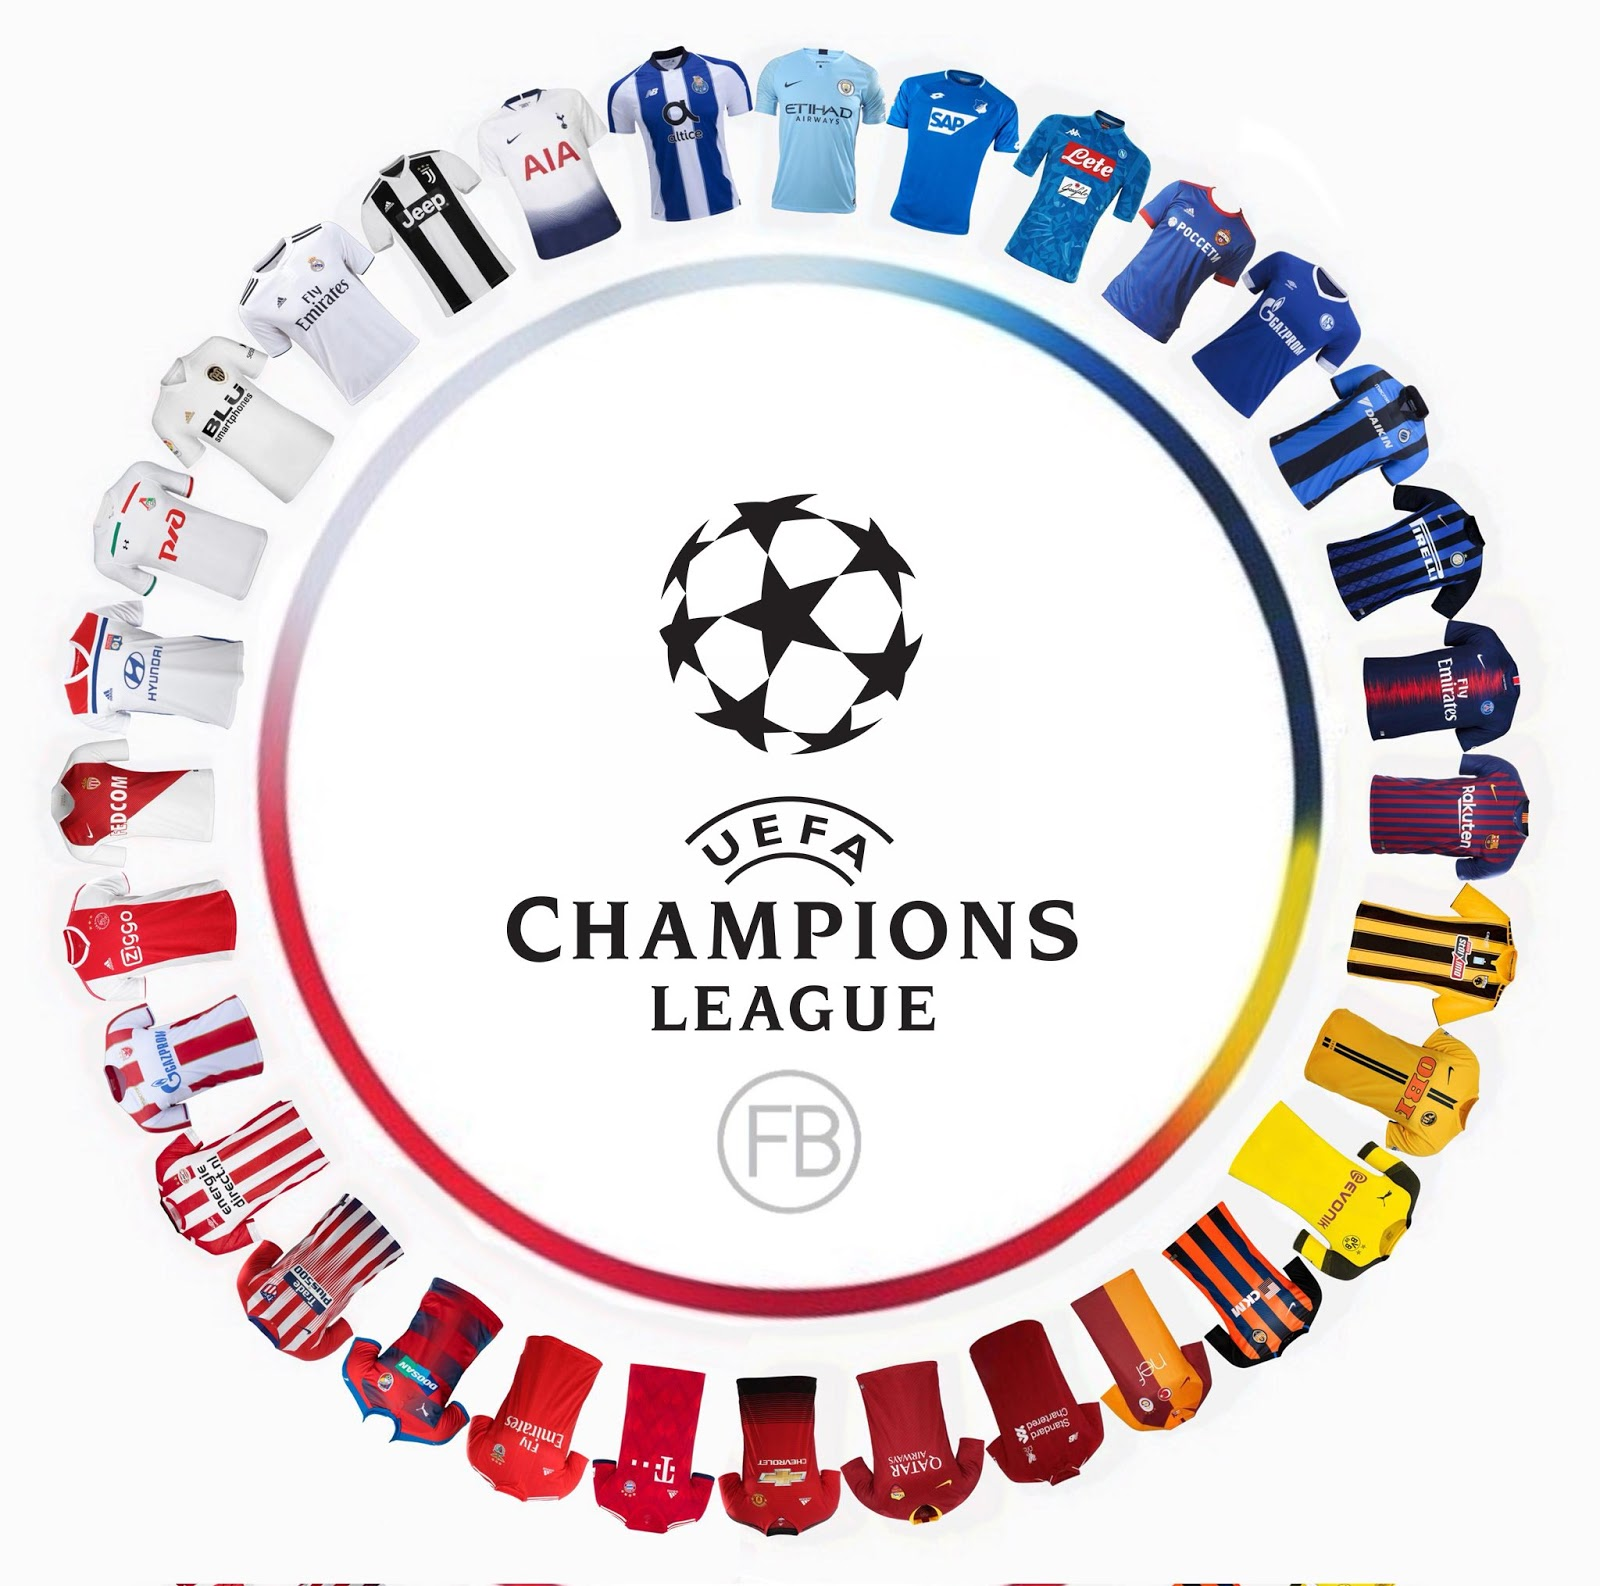 OVERVIEW: All 32 Teams' 18-19 Champions League Kits